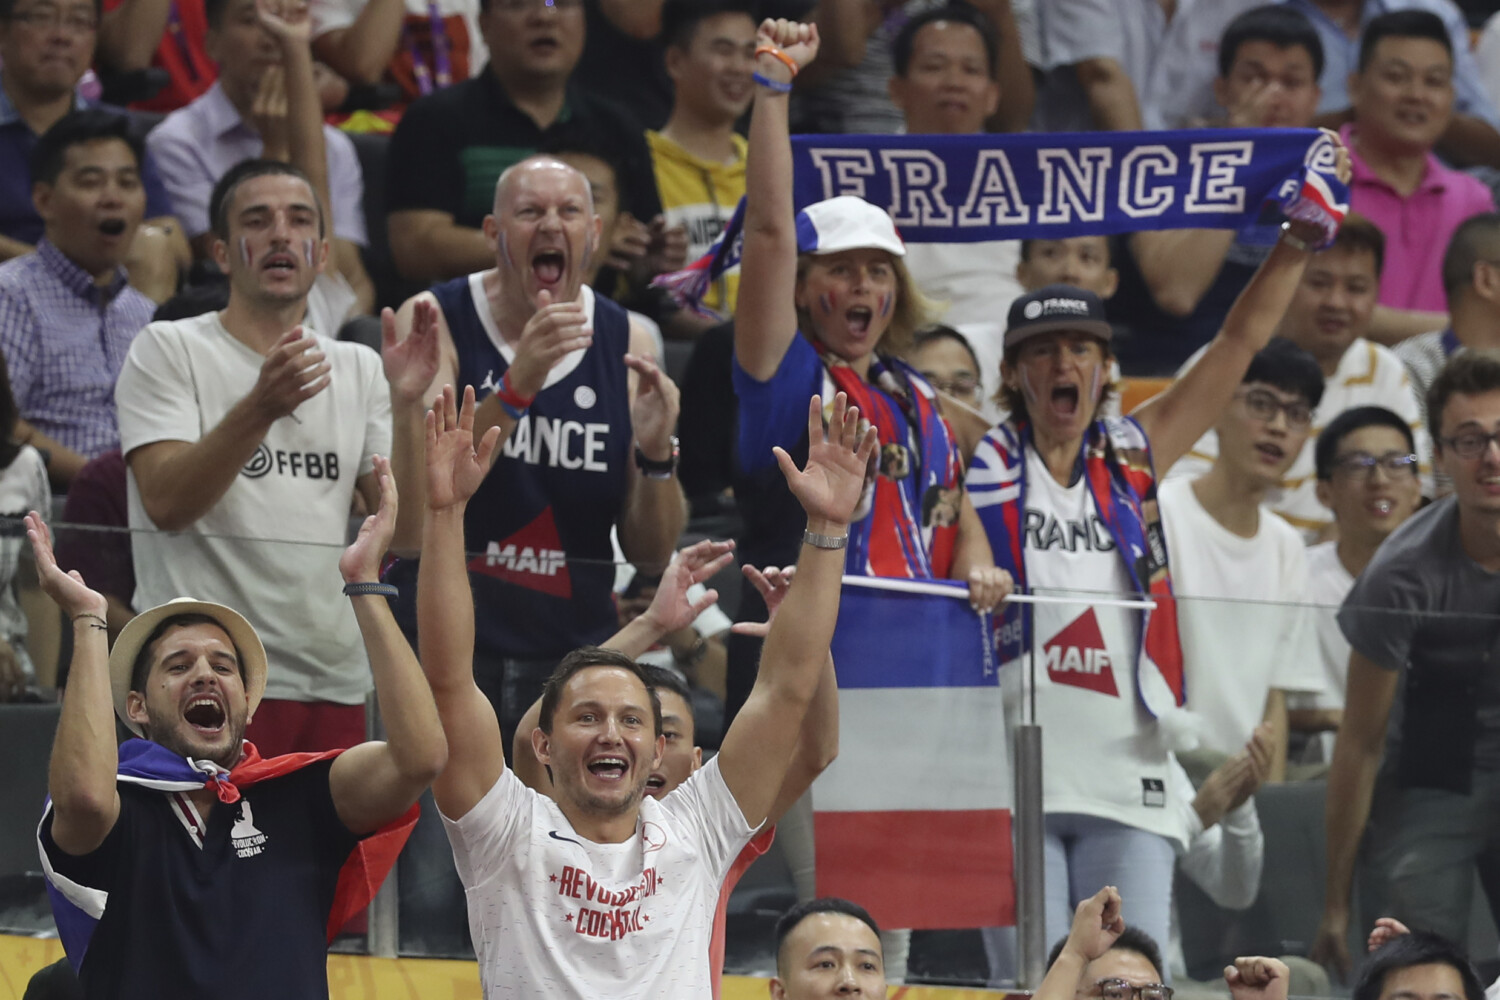 A shocker: U S  basketball loses to France in World Cup